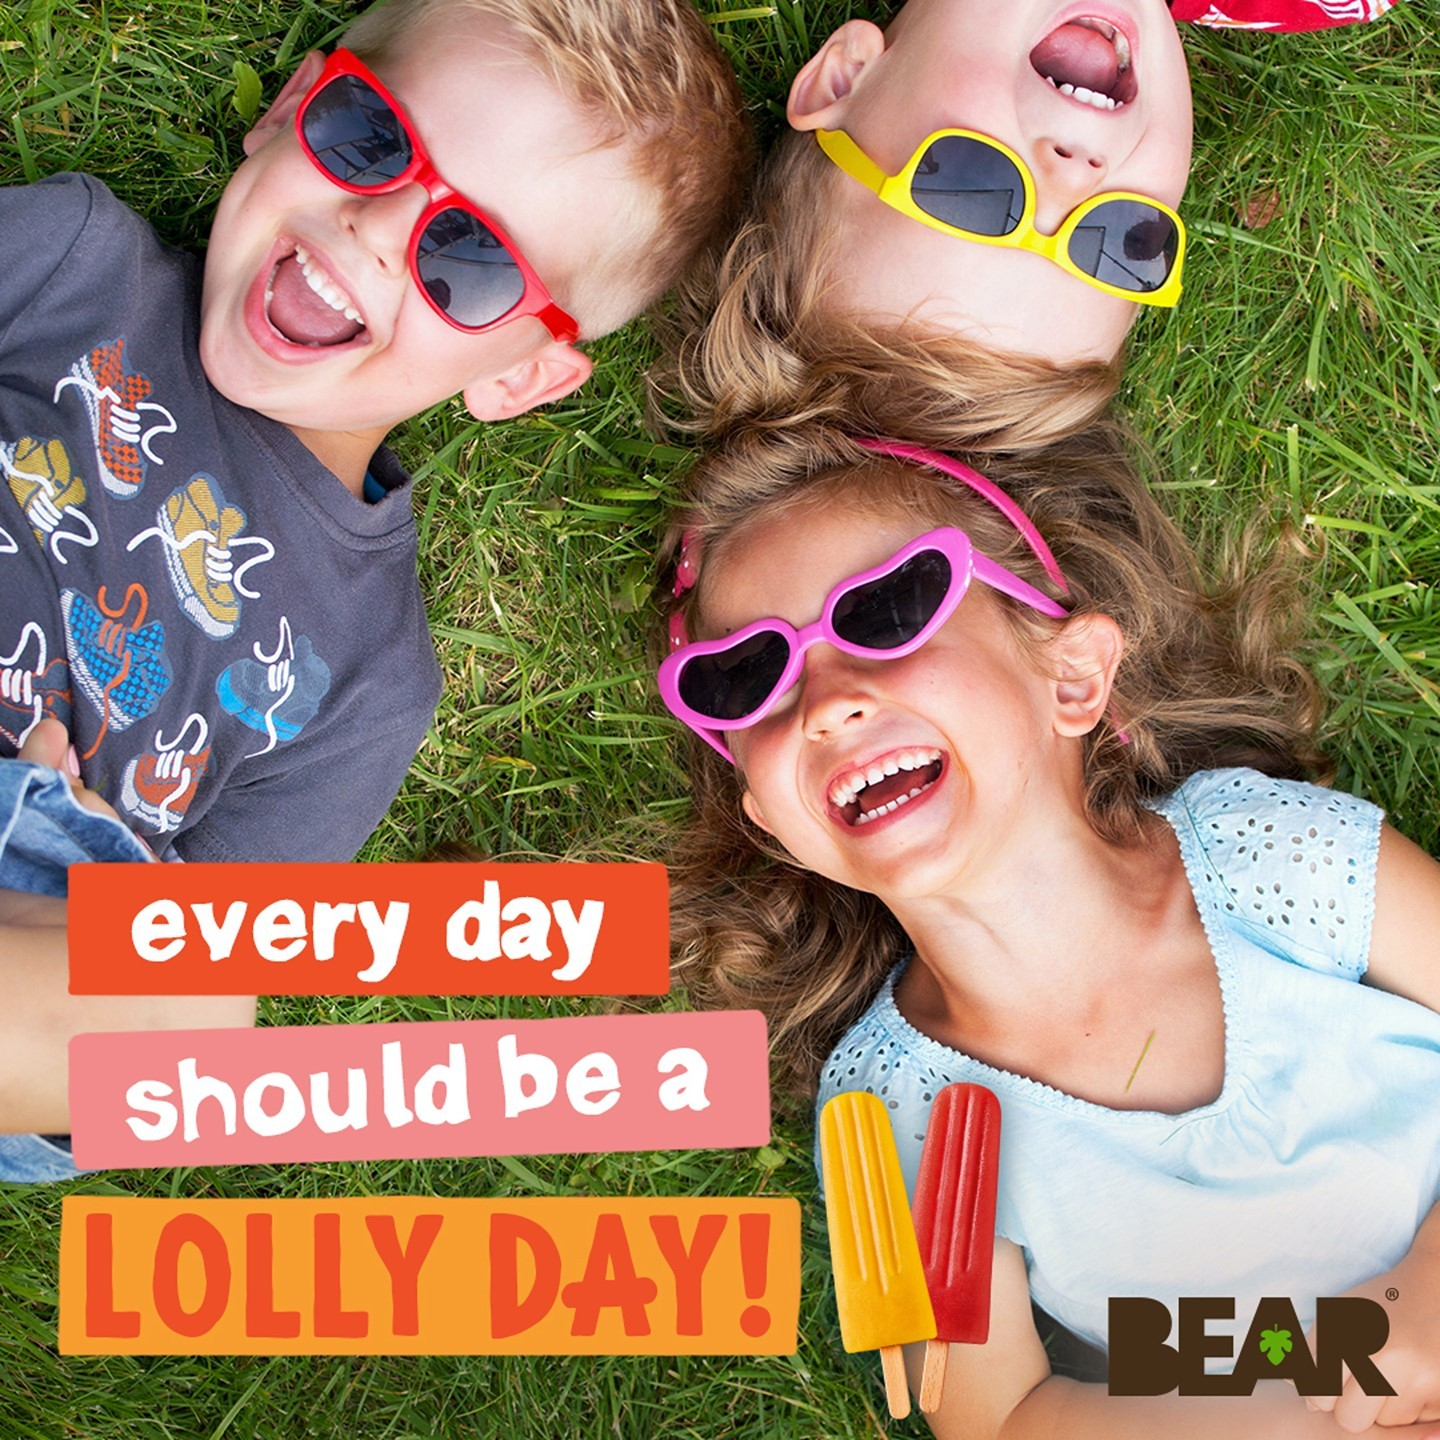 Every day should be a lolly day - especially today! ☀️   Our BEAR lollies are available now in select @waitrose stores. They're 100% natural and made with only 2 ingredients so that every day can b...